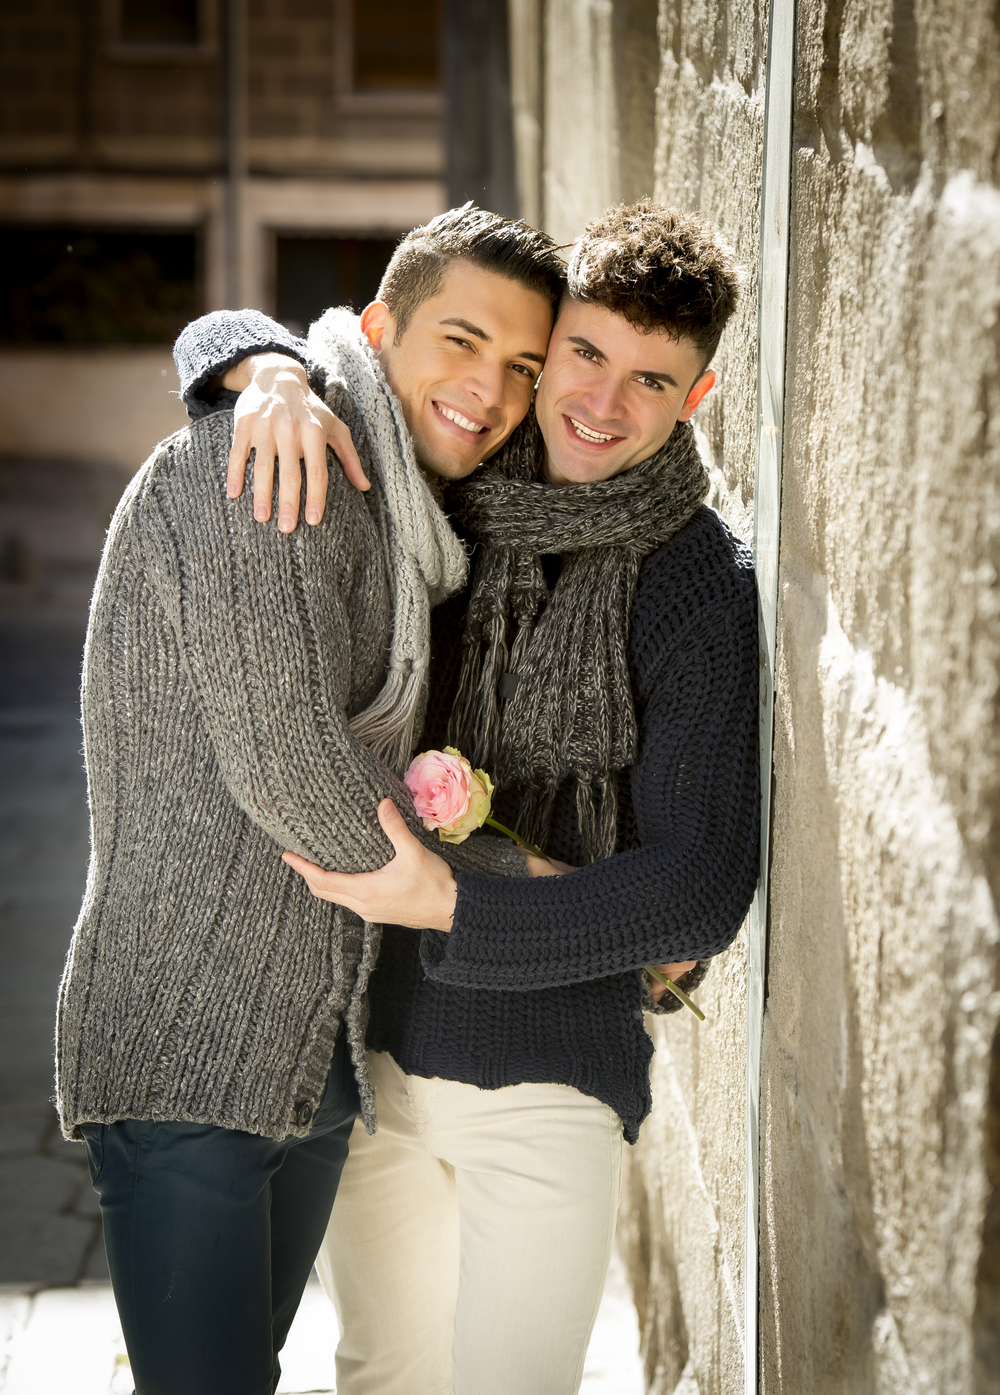 Nancy-Kerr-gay-men-couple-holding-rose-kissing-outdoors-valentines-day.jpg